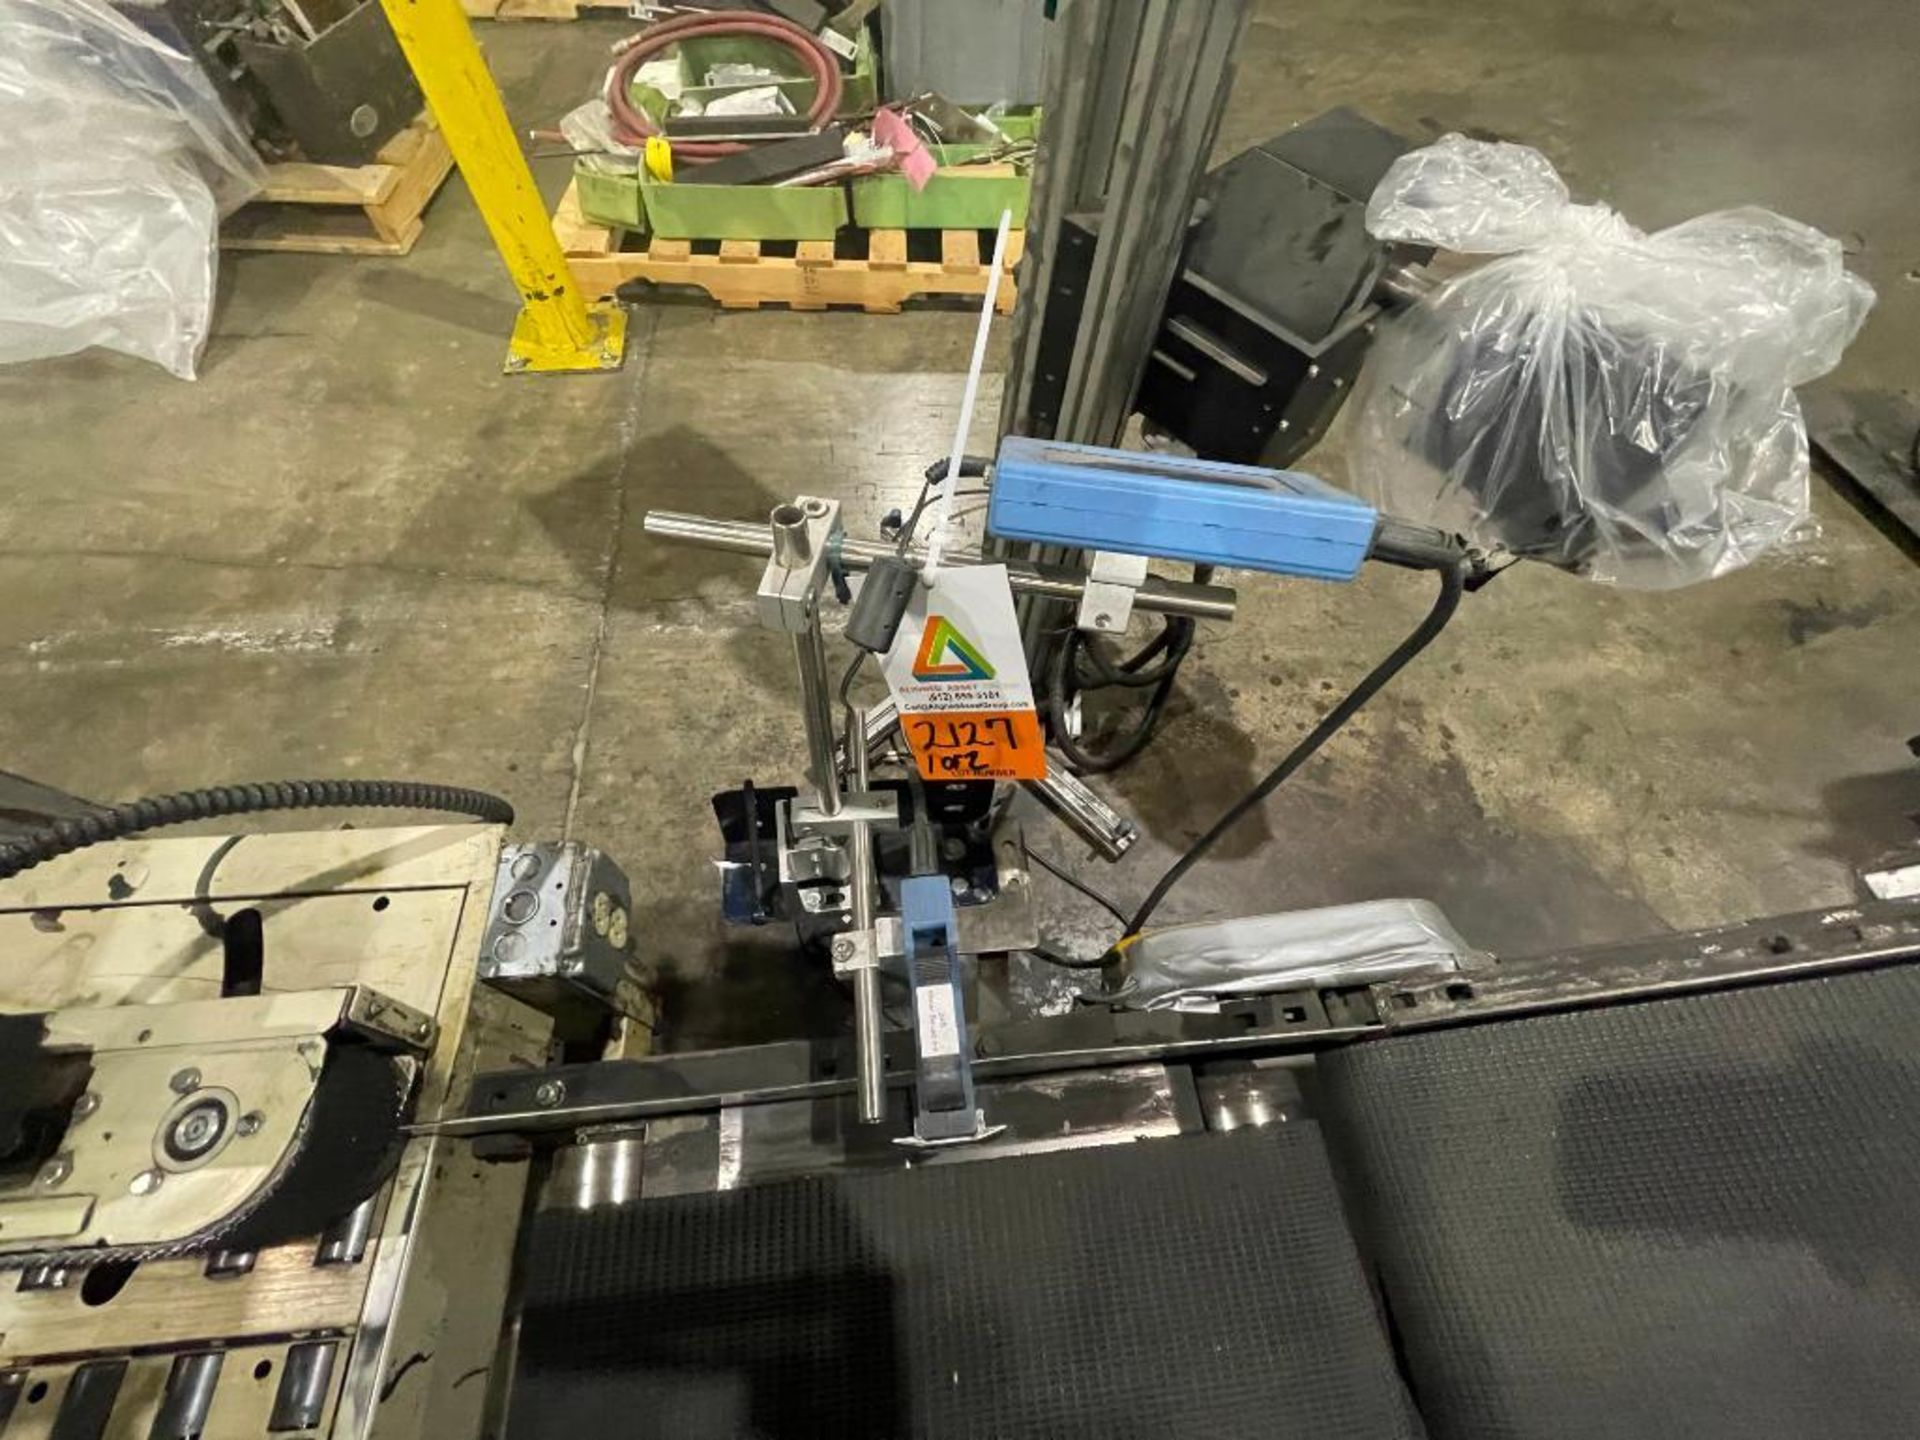 Automatic Printing Systems case coder - Image 14 of 15